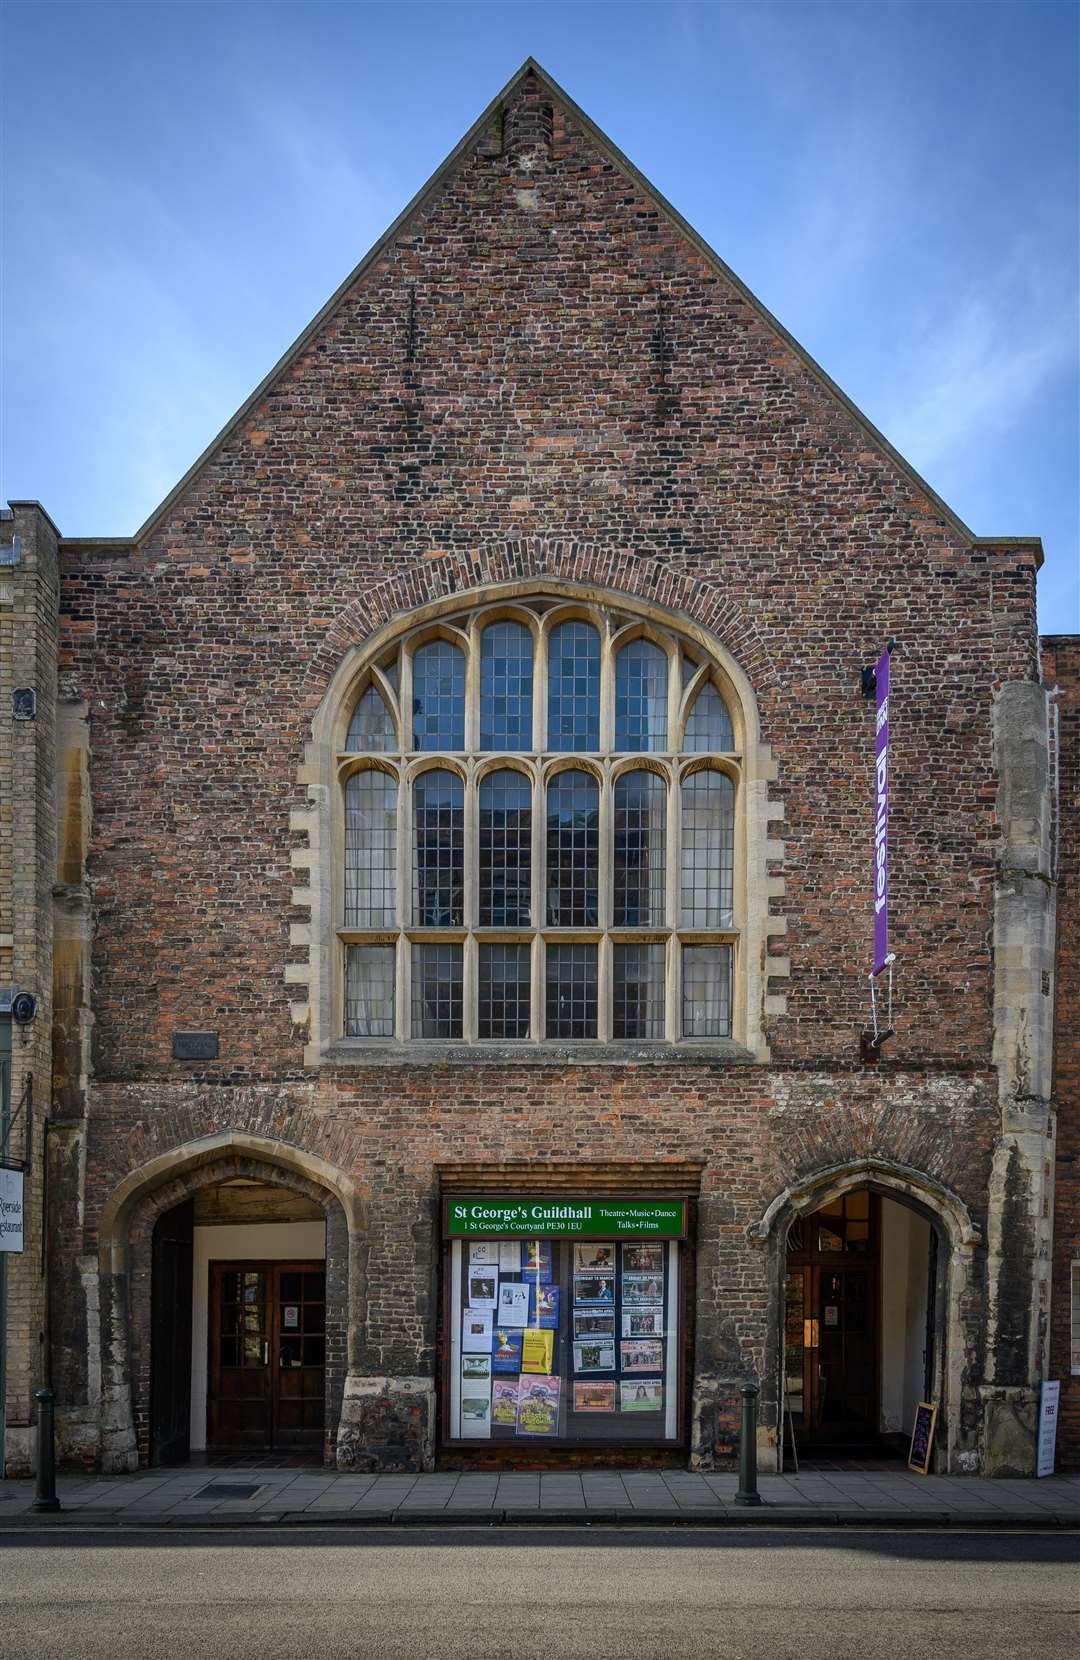 The St George's Guildhall in King Street, King's Lynn (50112356)